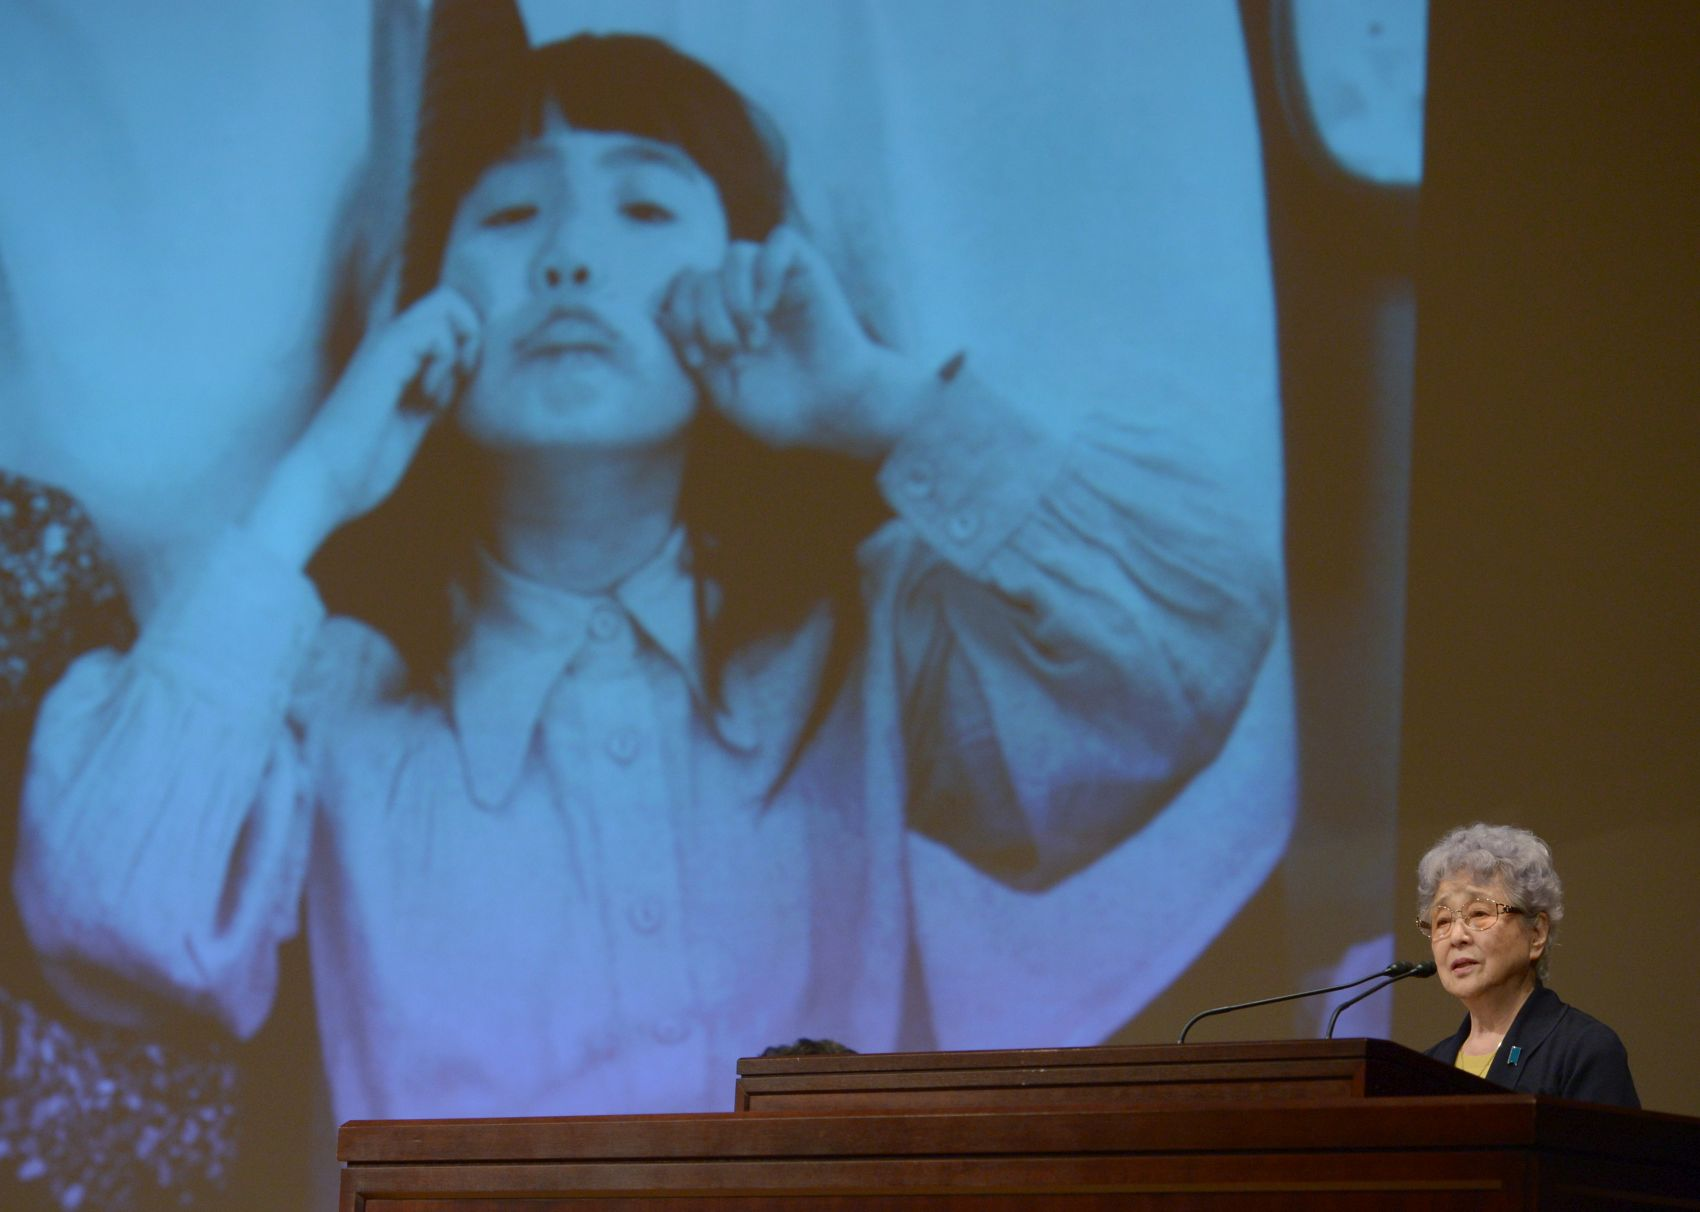 Abductions by North Korea: International Issue is Victim Families' Personal Sorrow